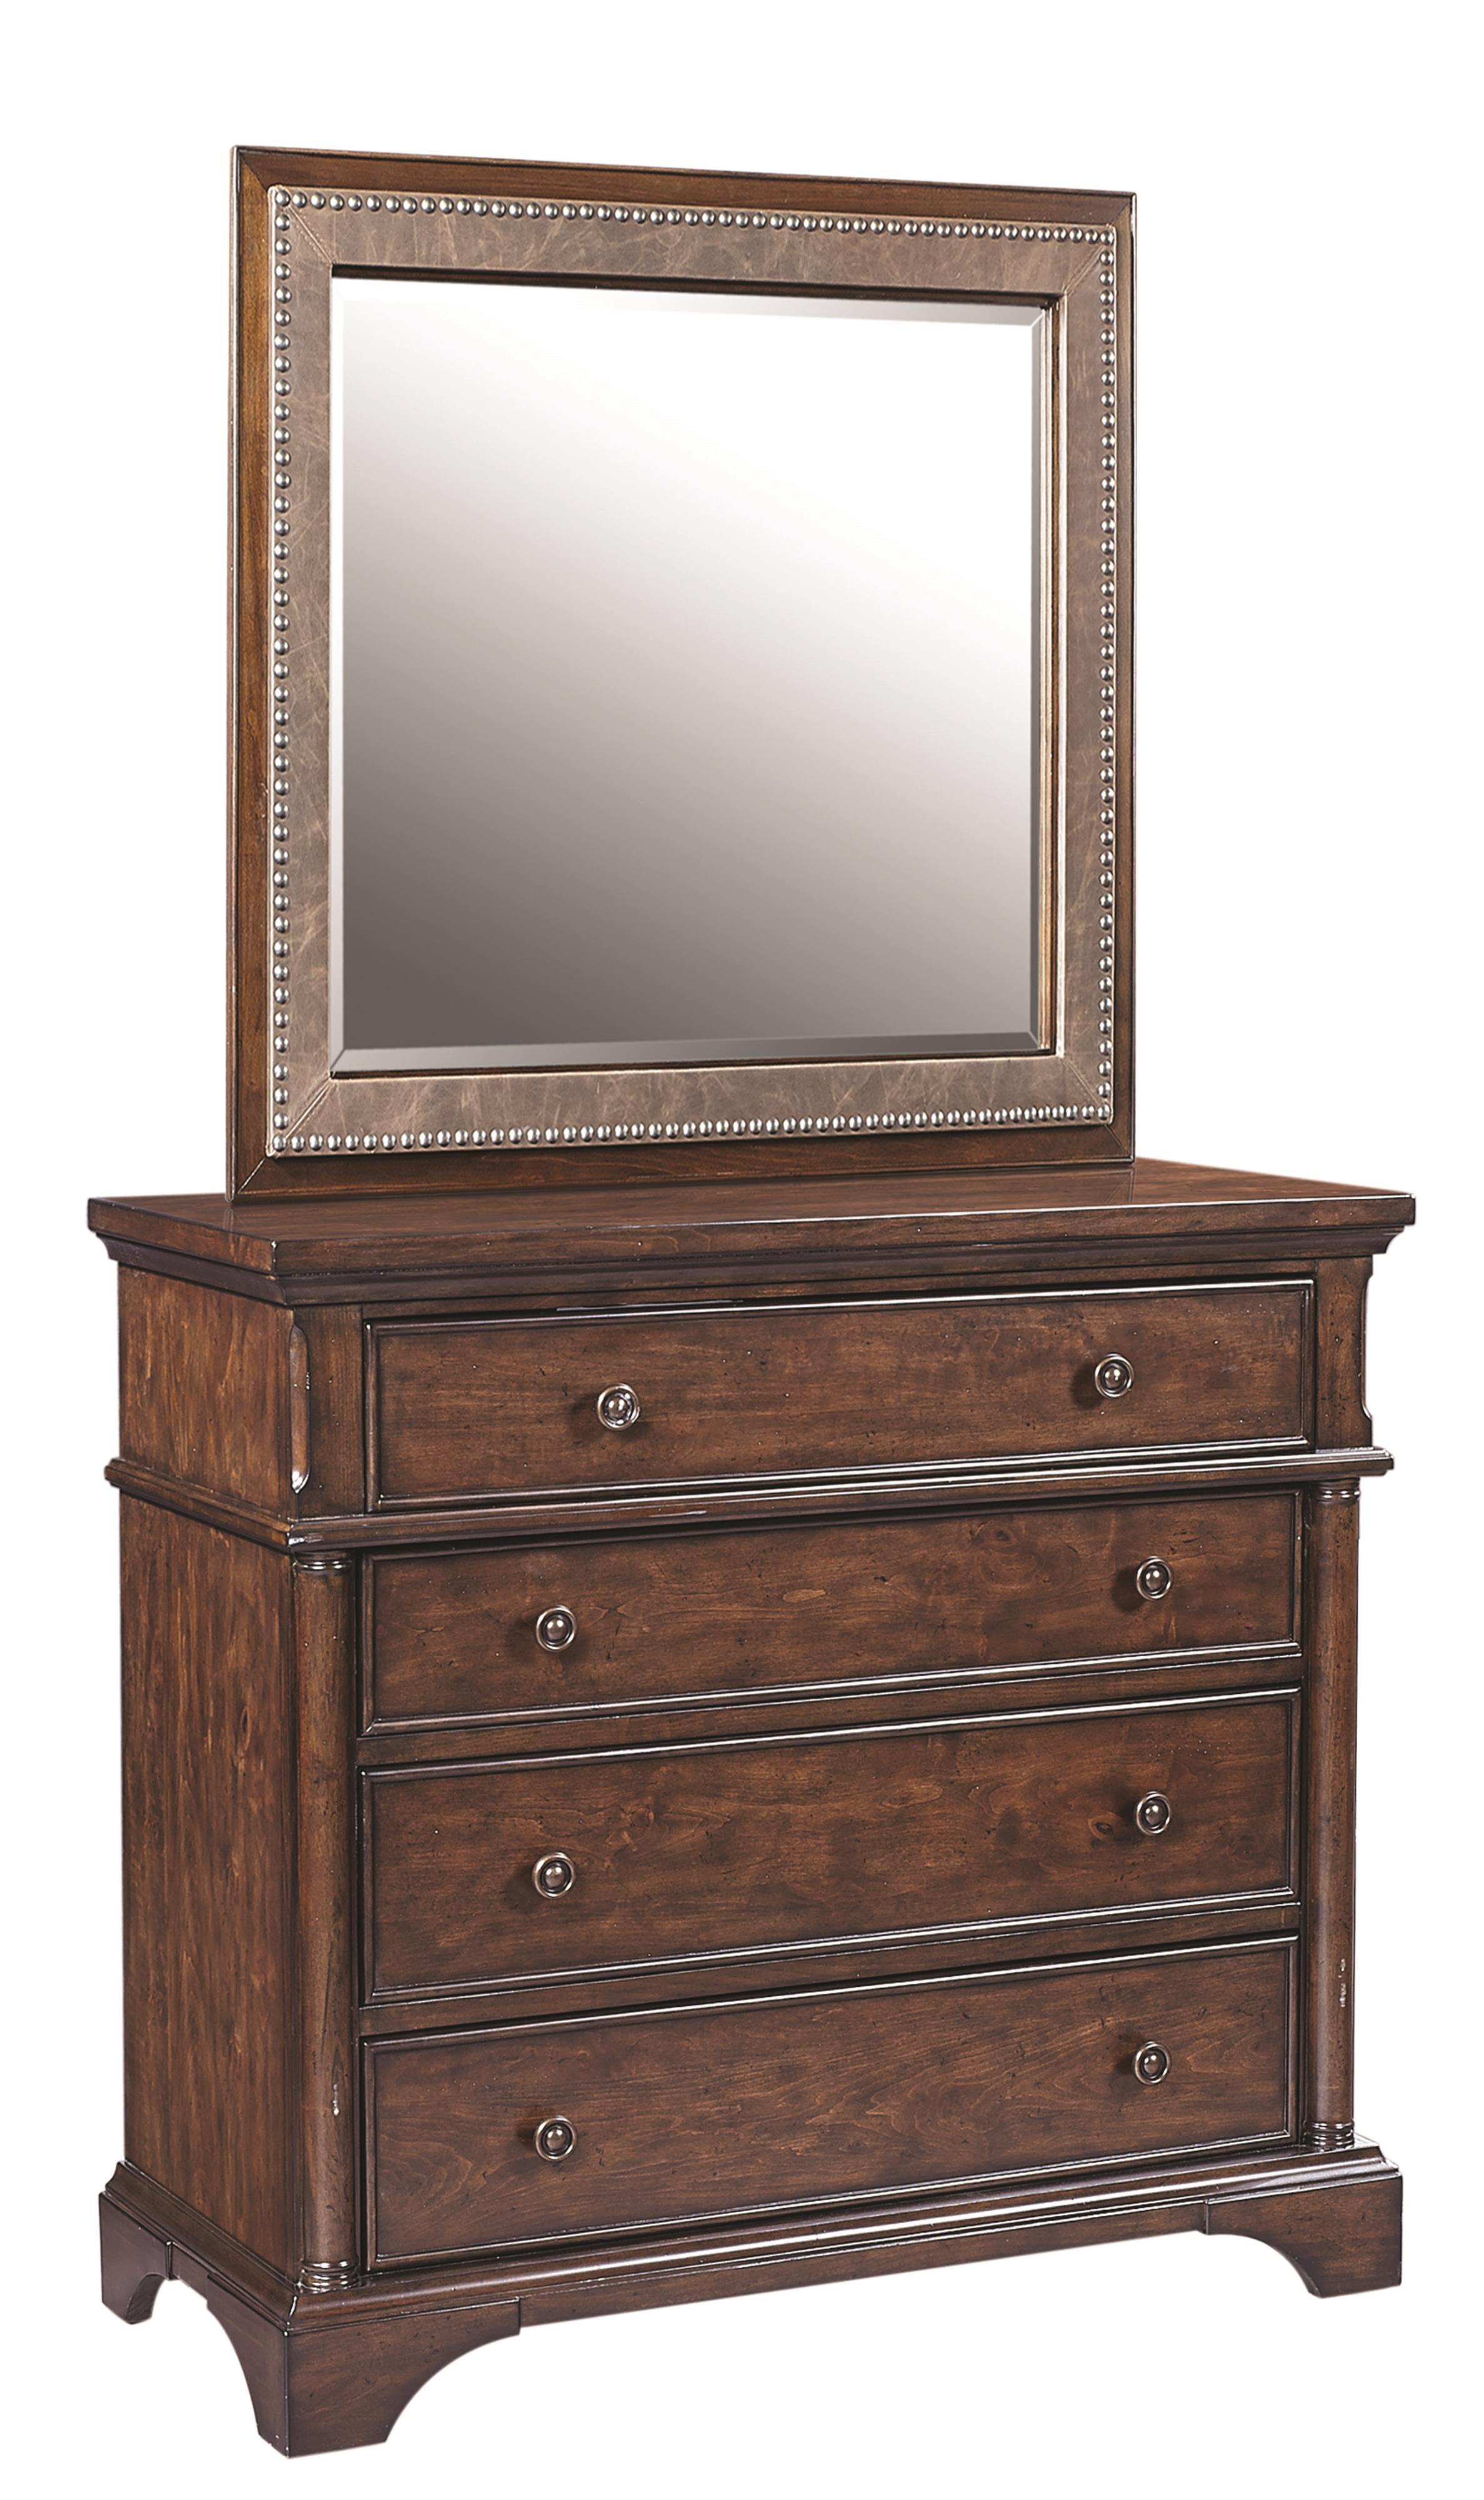 Aspenhome Bancroft Liv360 Entertainment Chest and Mirror - Item Number: I08-486+464